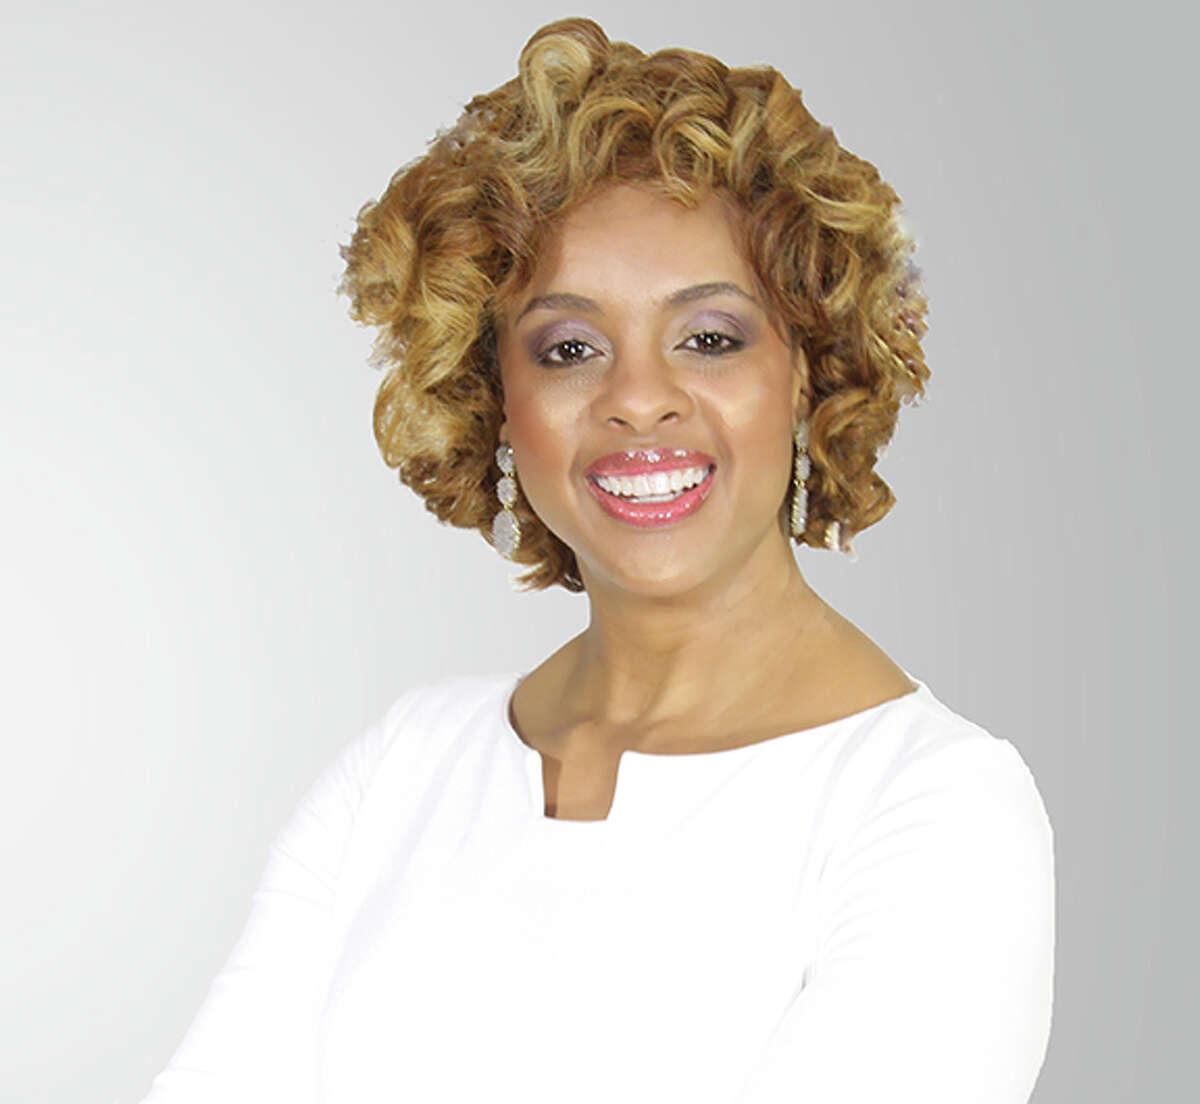 Dr. KMarie King